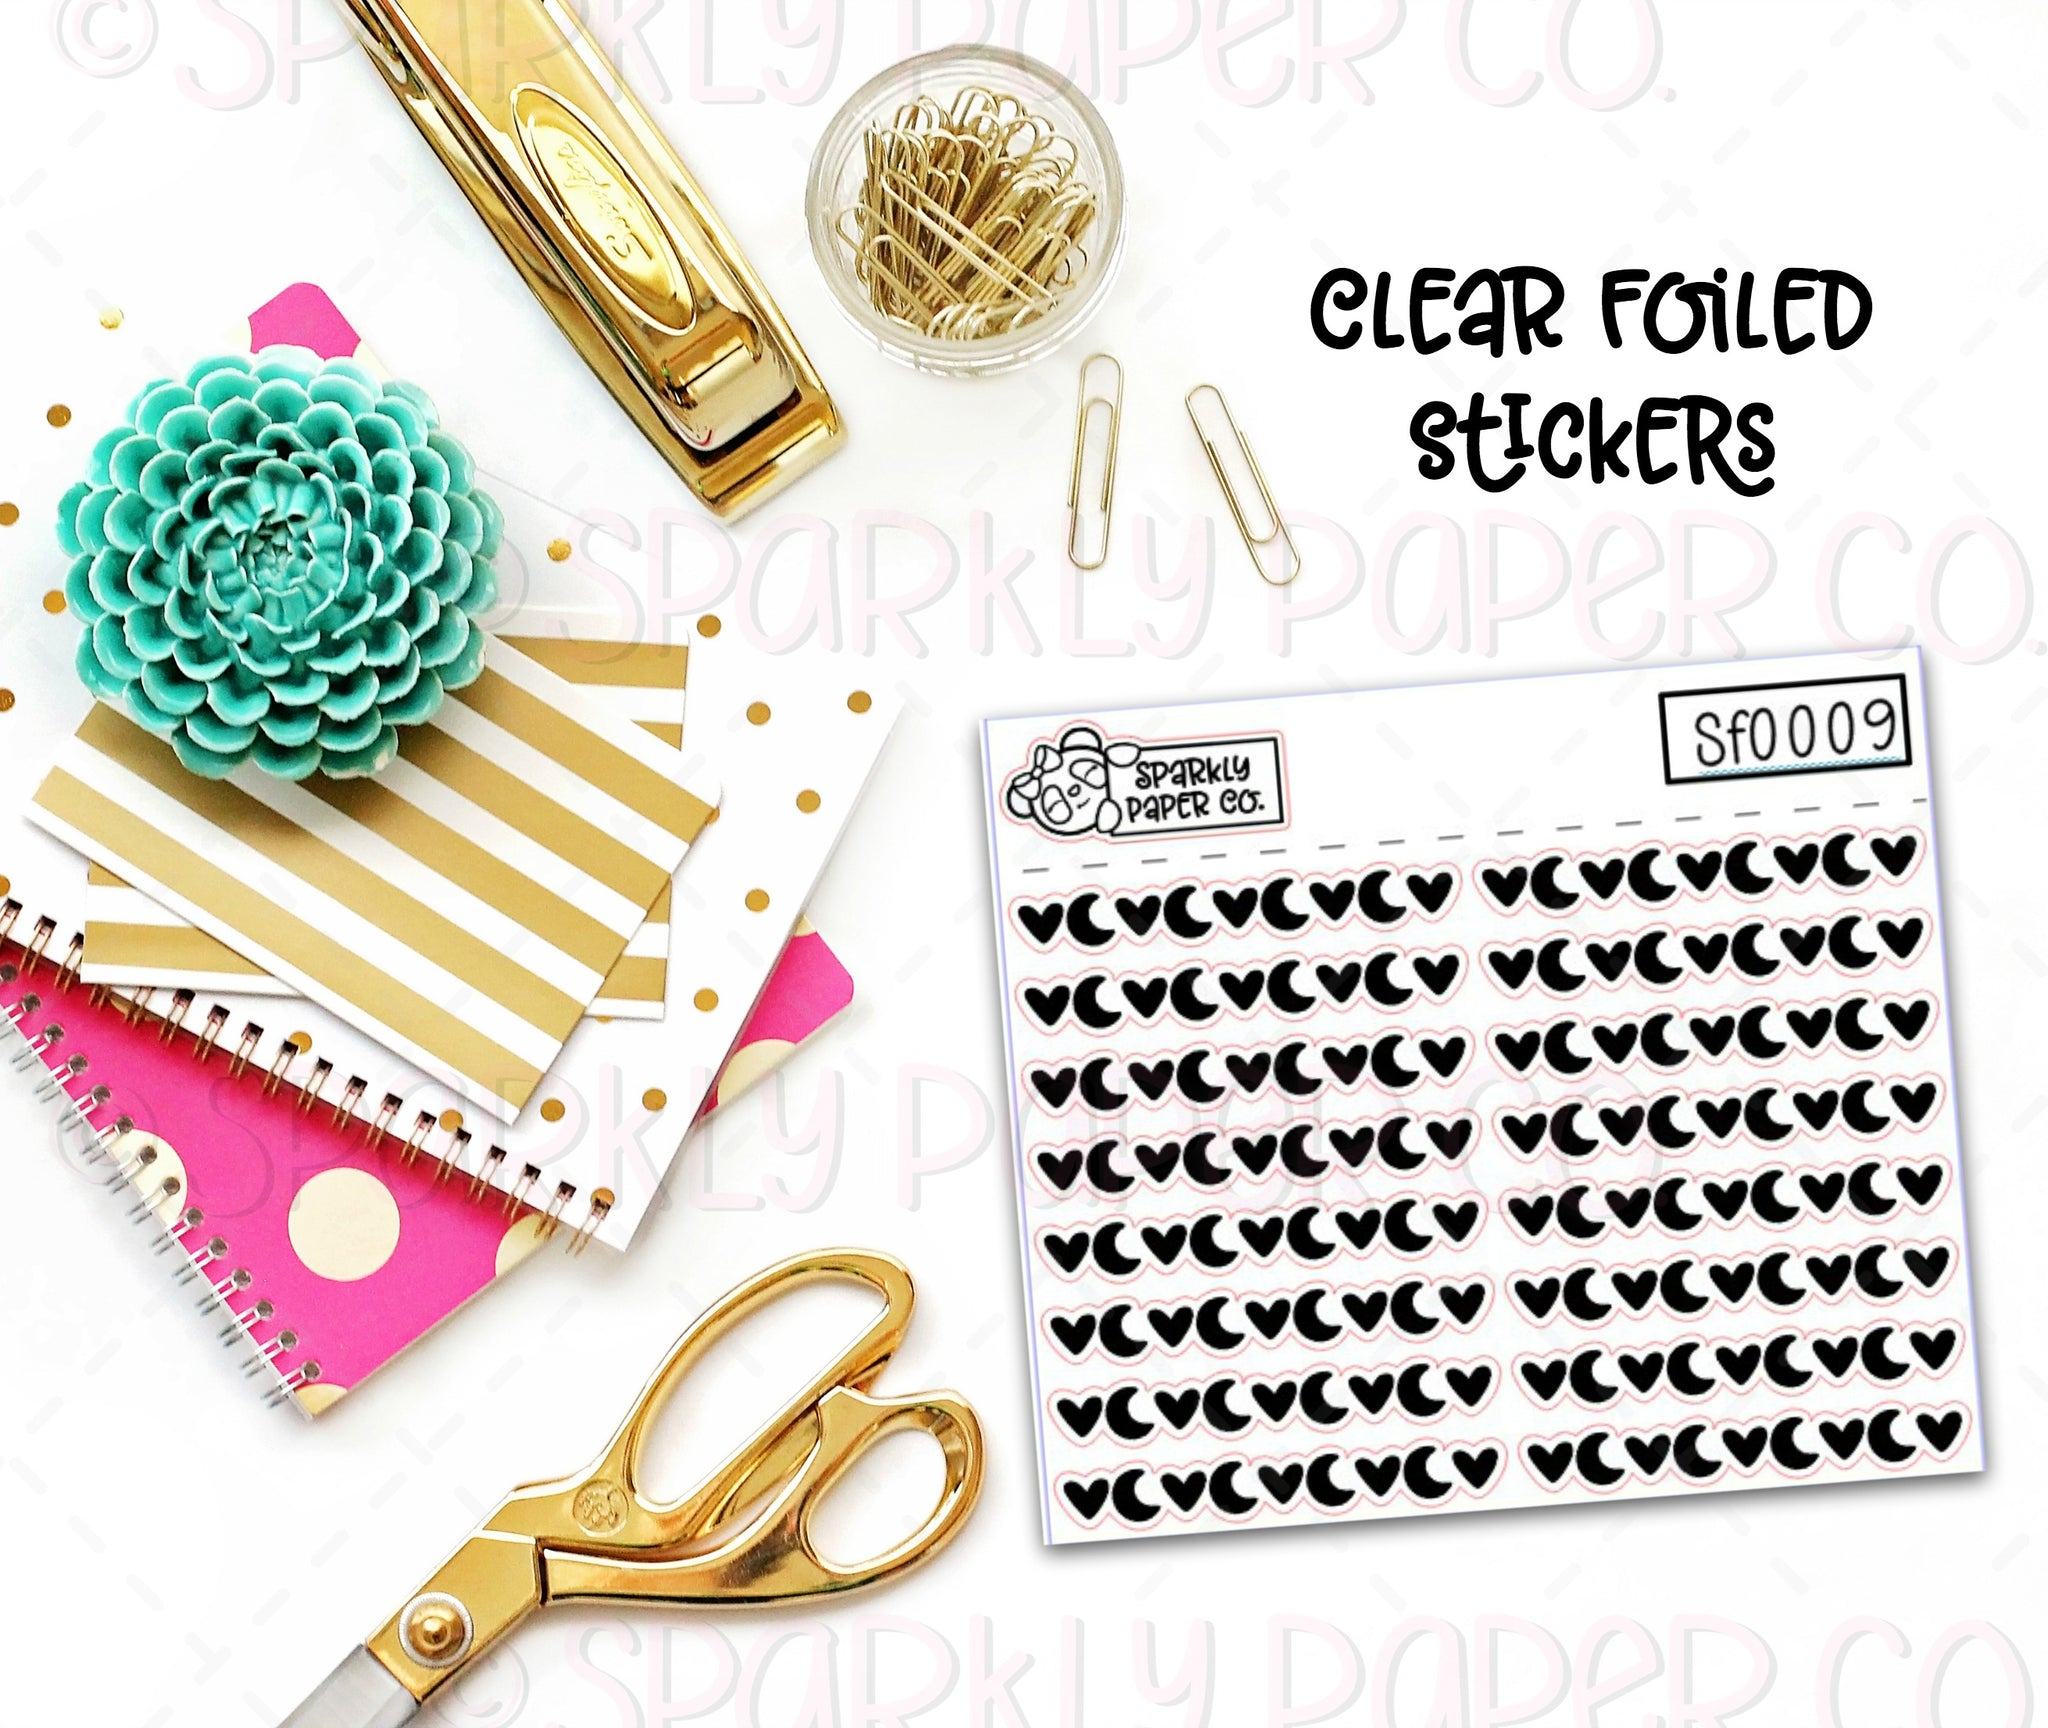 Hearts and Moons Header/Dividers Clear Foiled Stickers (sf0009)